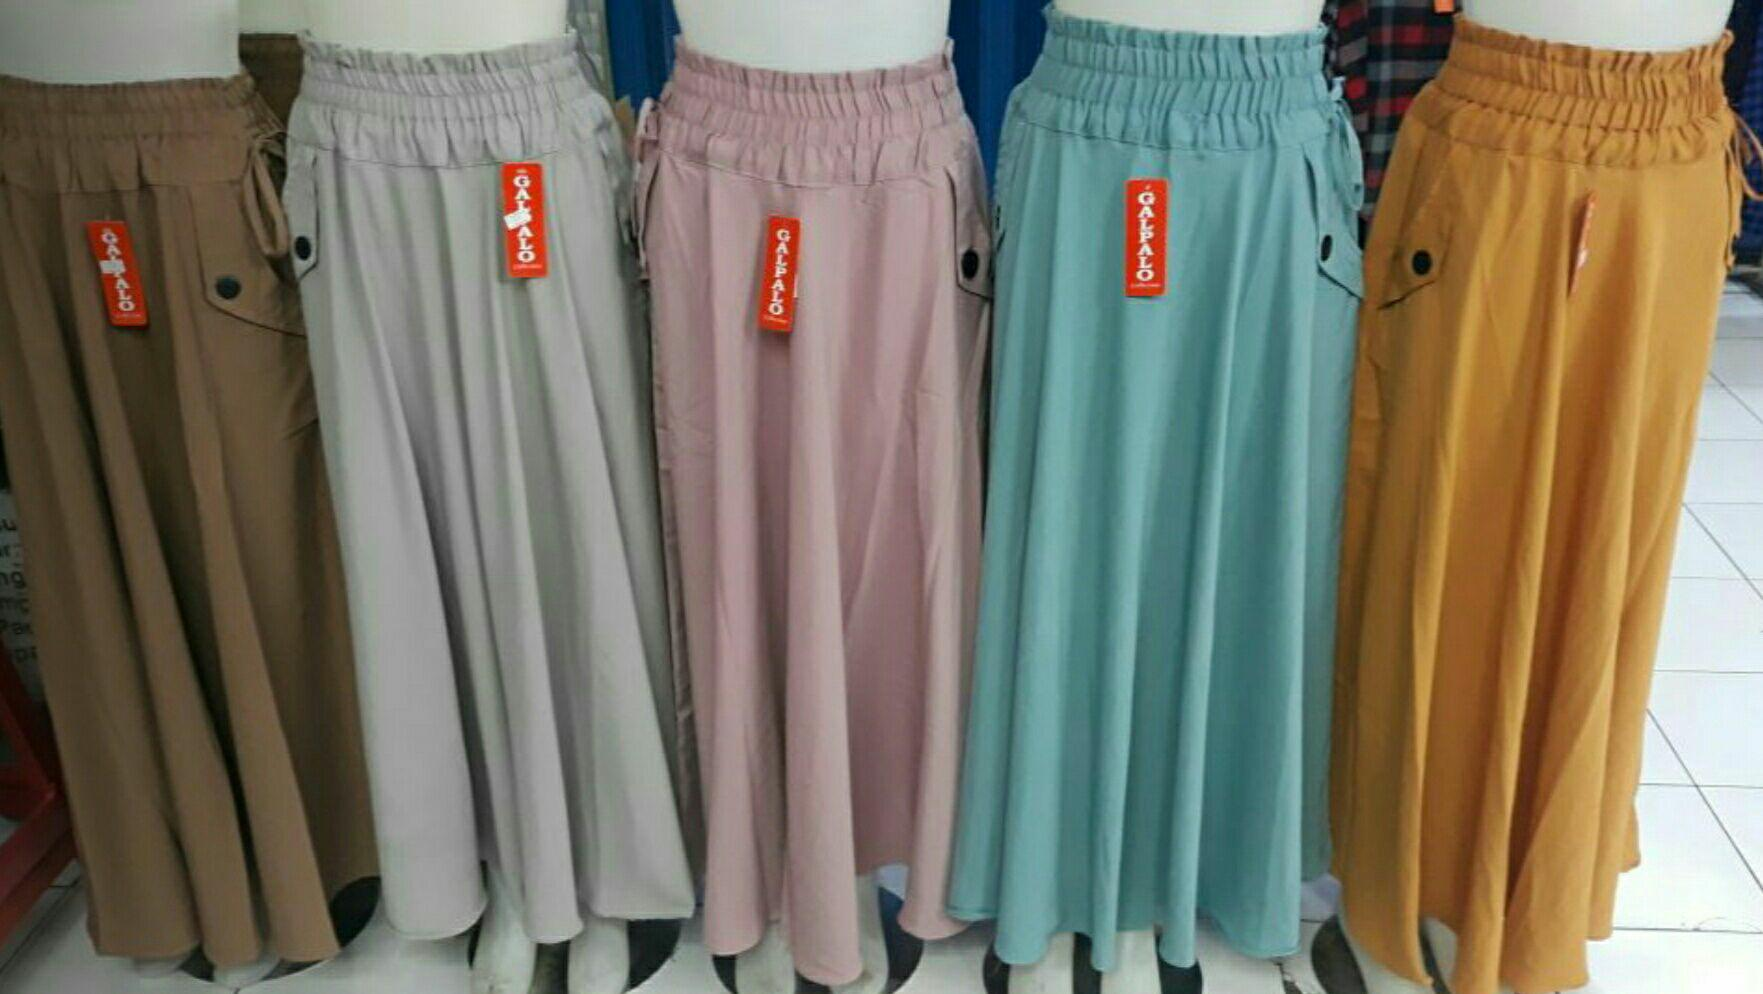 Review Rok Umbrella Polos Rok Payung Umbrella Skirt Rok Muslimah Terbaru